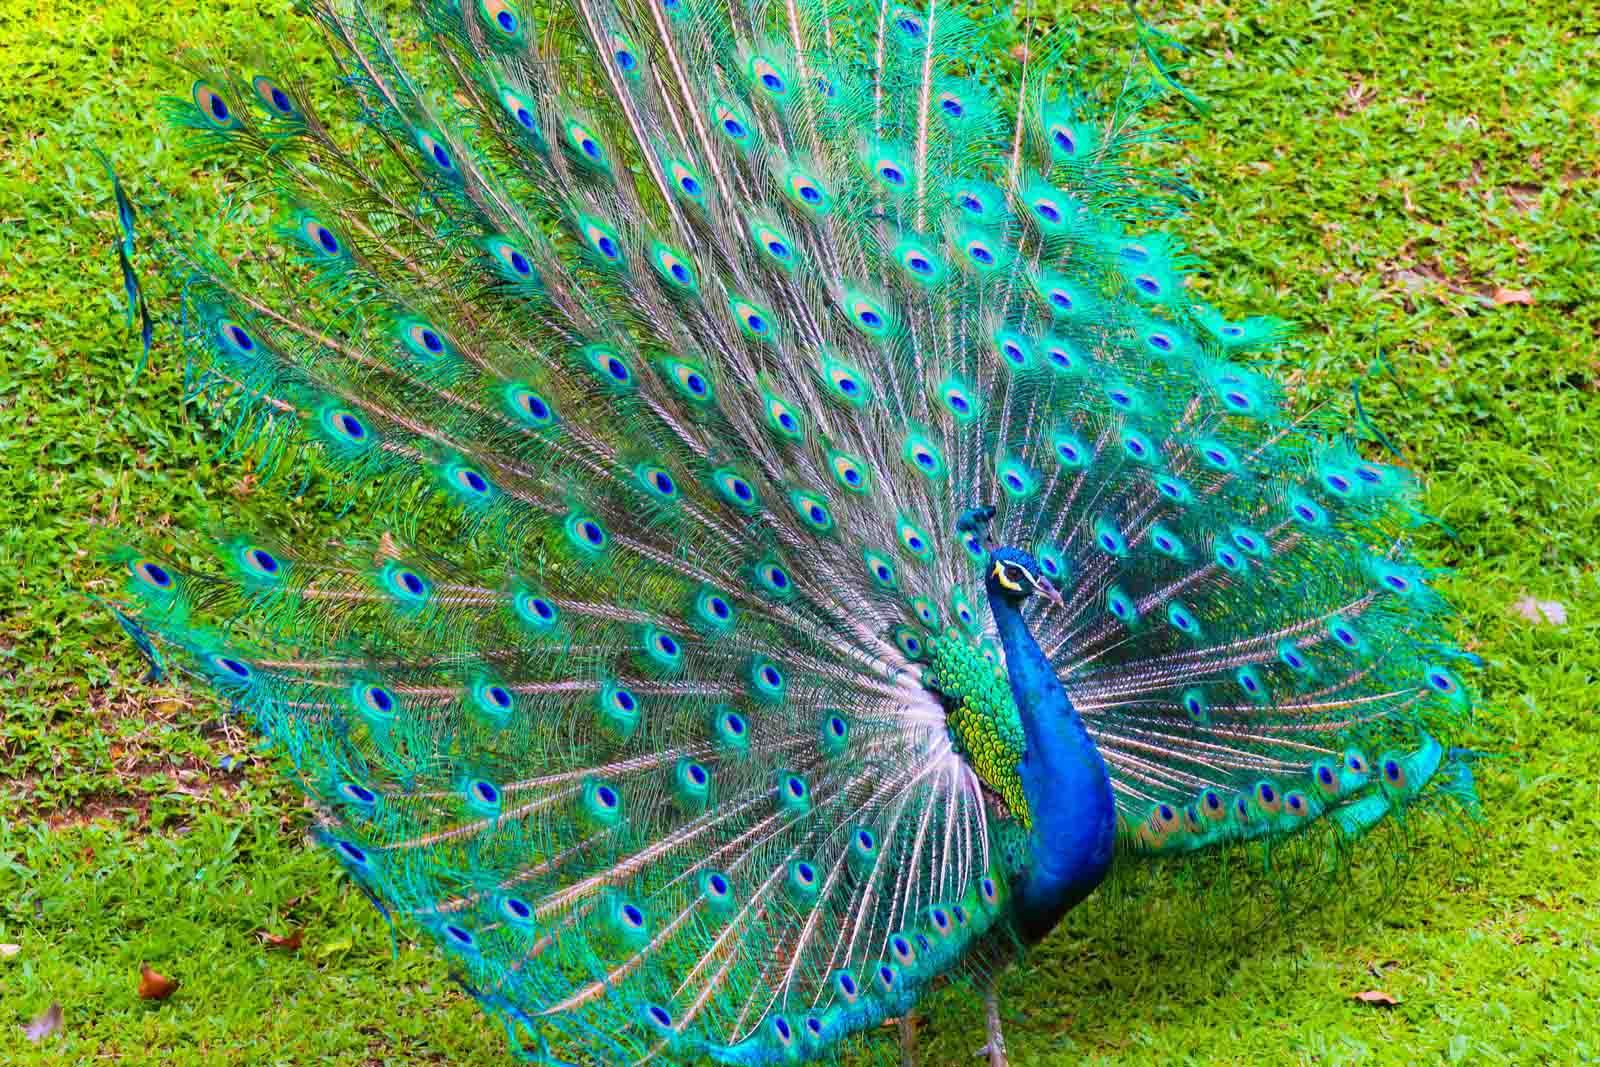 Beautiful Peacock Background Hd Wallpapers Hd Wallapers For Free Bird Western Ghats Background Hd Wallpaper